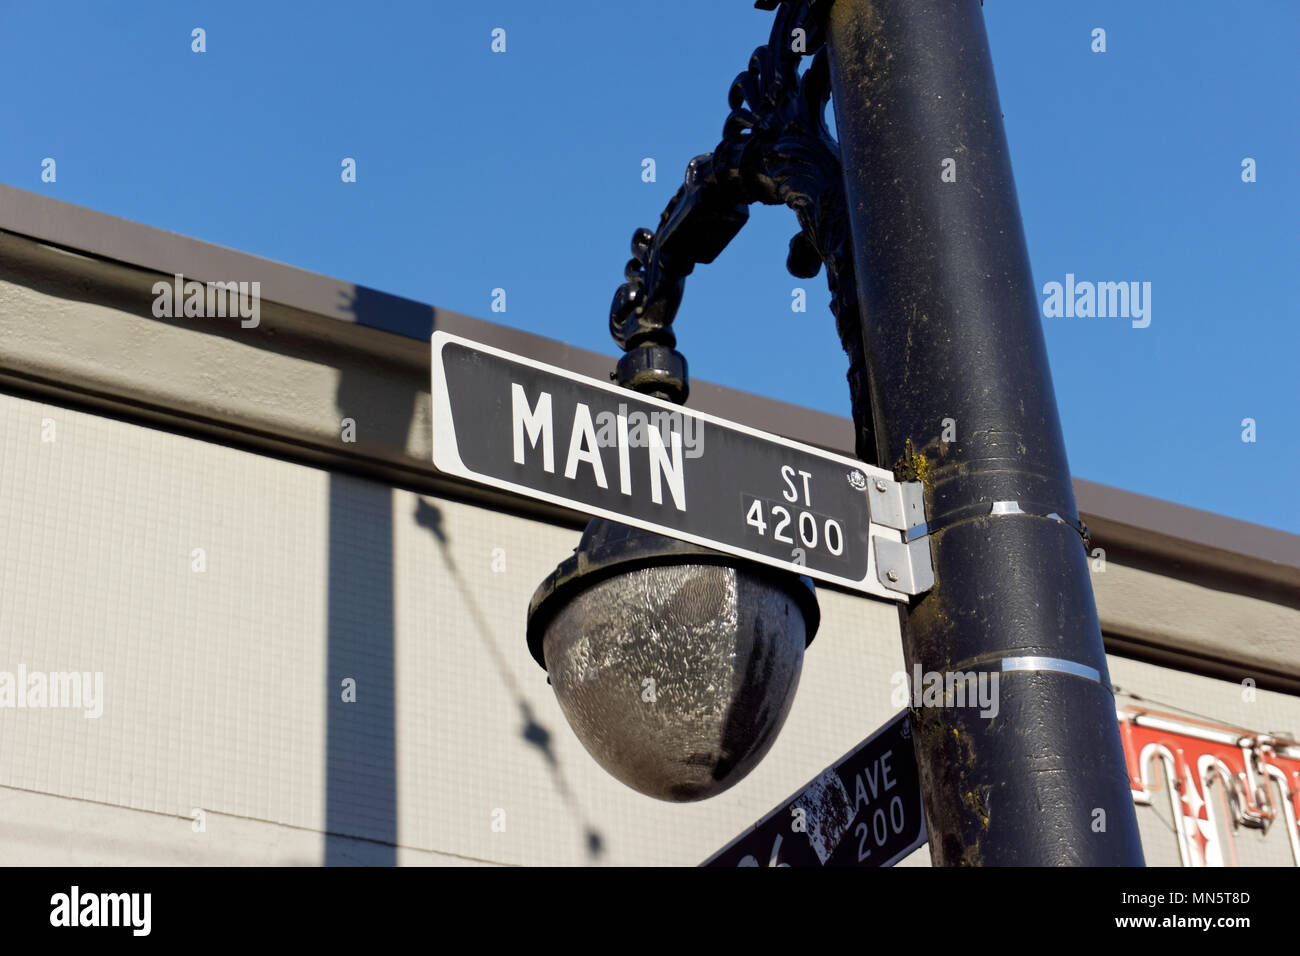 Close up of a street sign on Main Street in Vancouver, BC, Canada - Stock Image